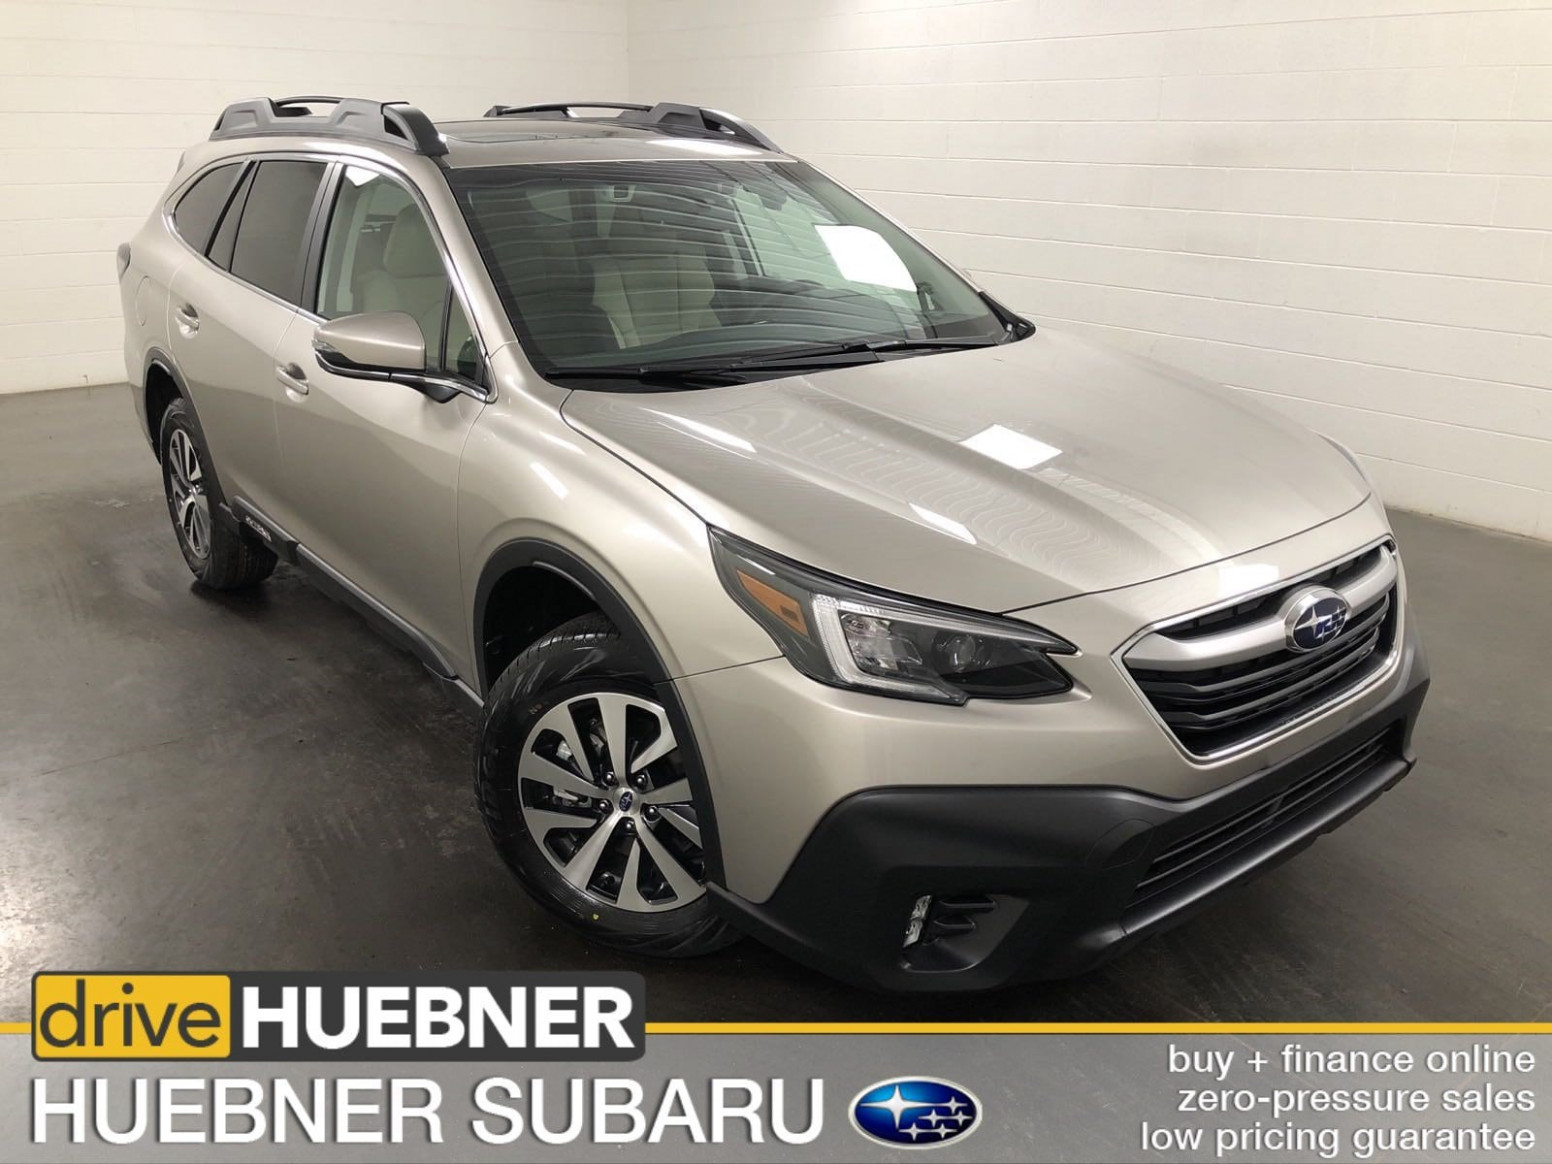 New 11 Subaru Outback in Tungsten For Sale in Carrollton, OH | Stock  #11